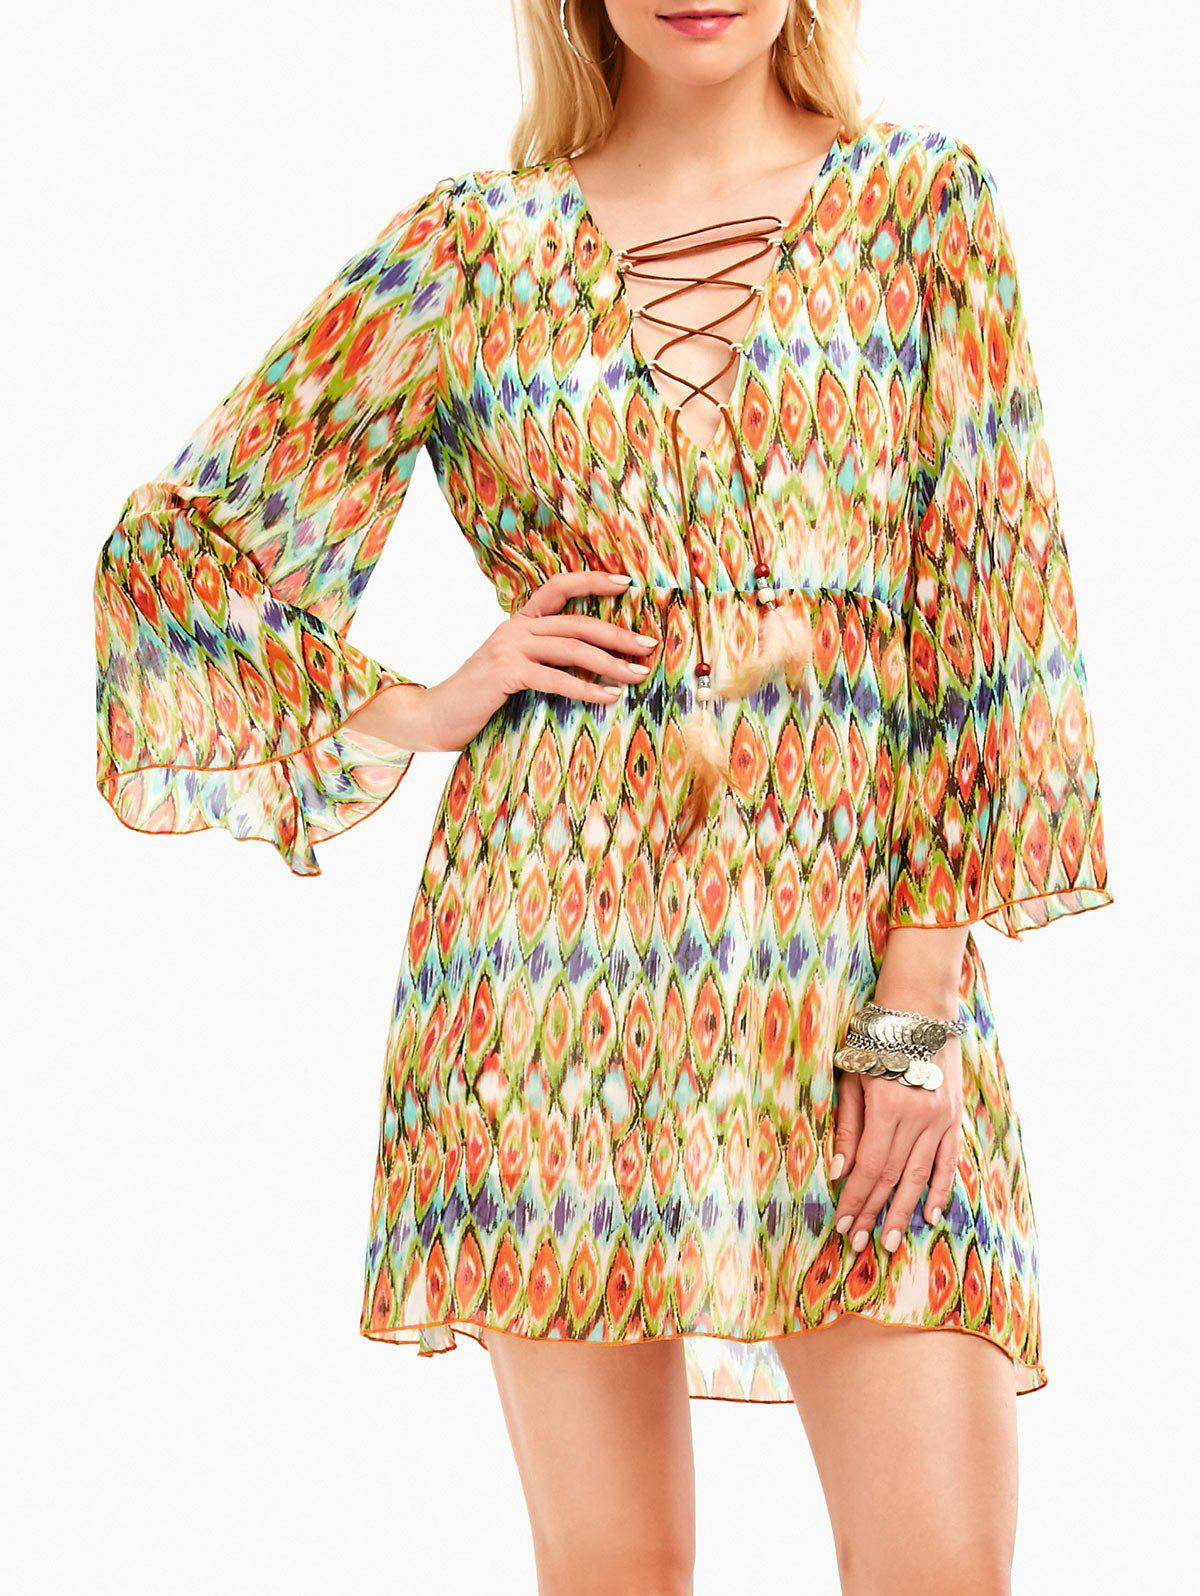 Plunging Neckline Snake Print Chiffon Bohemian Dress - LIGHT YELLOW M